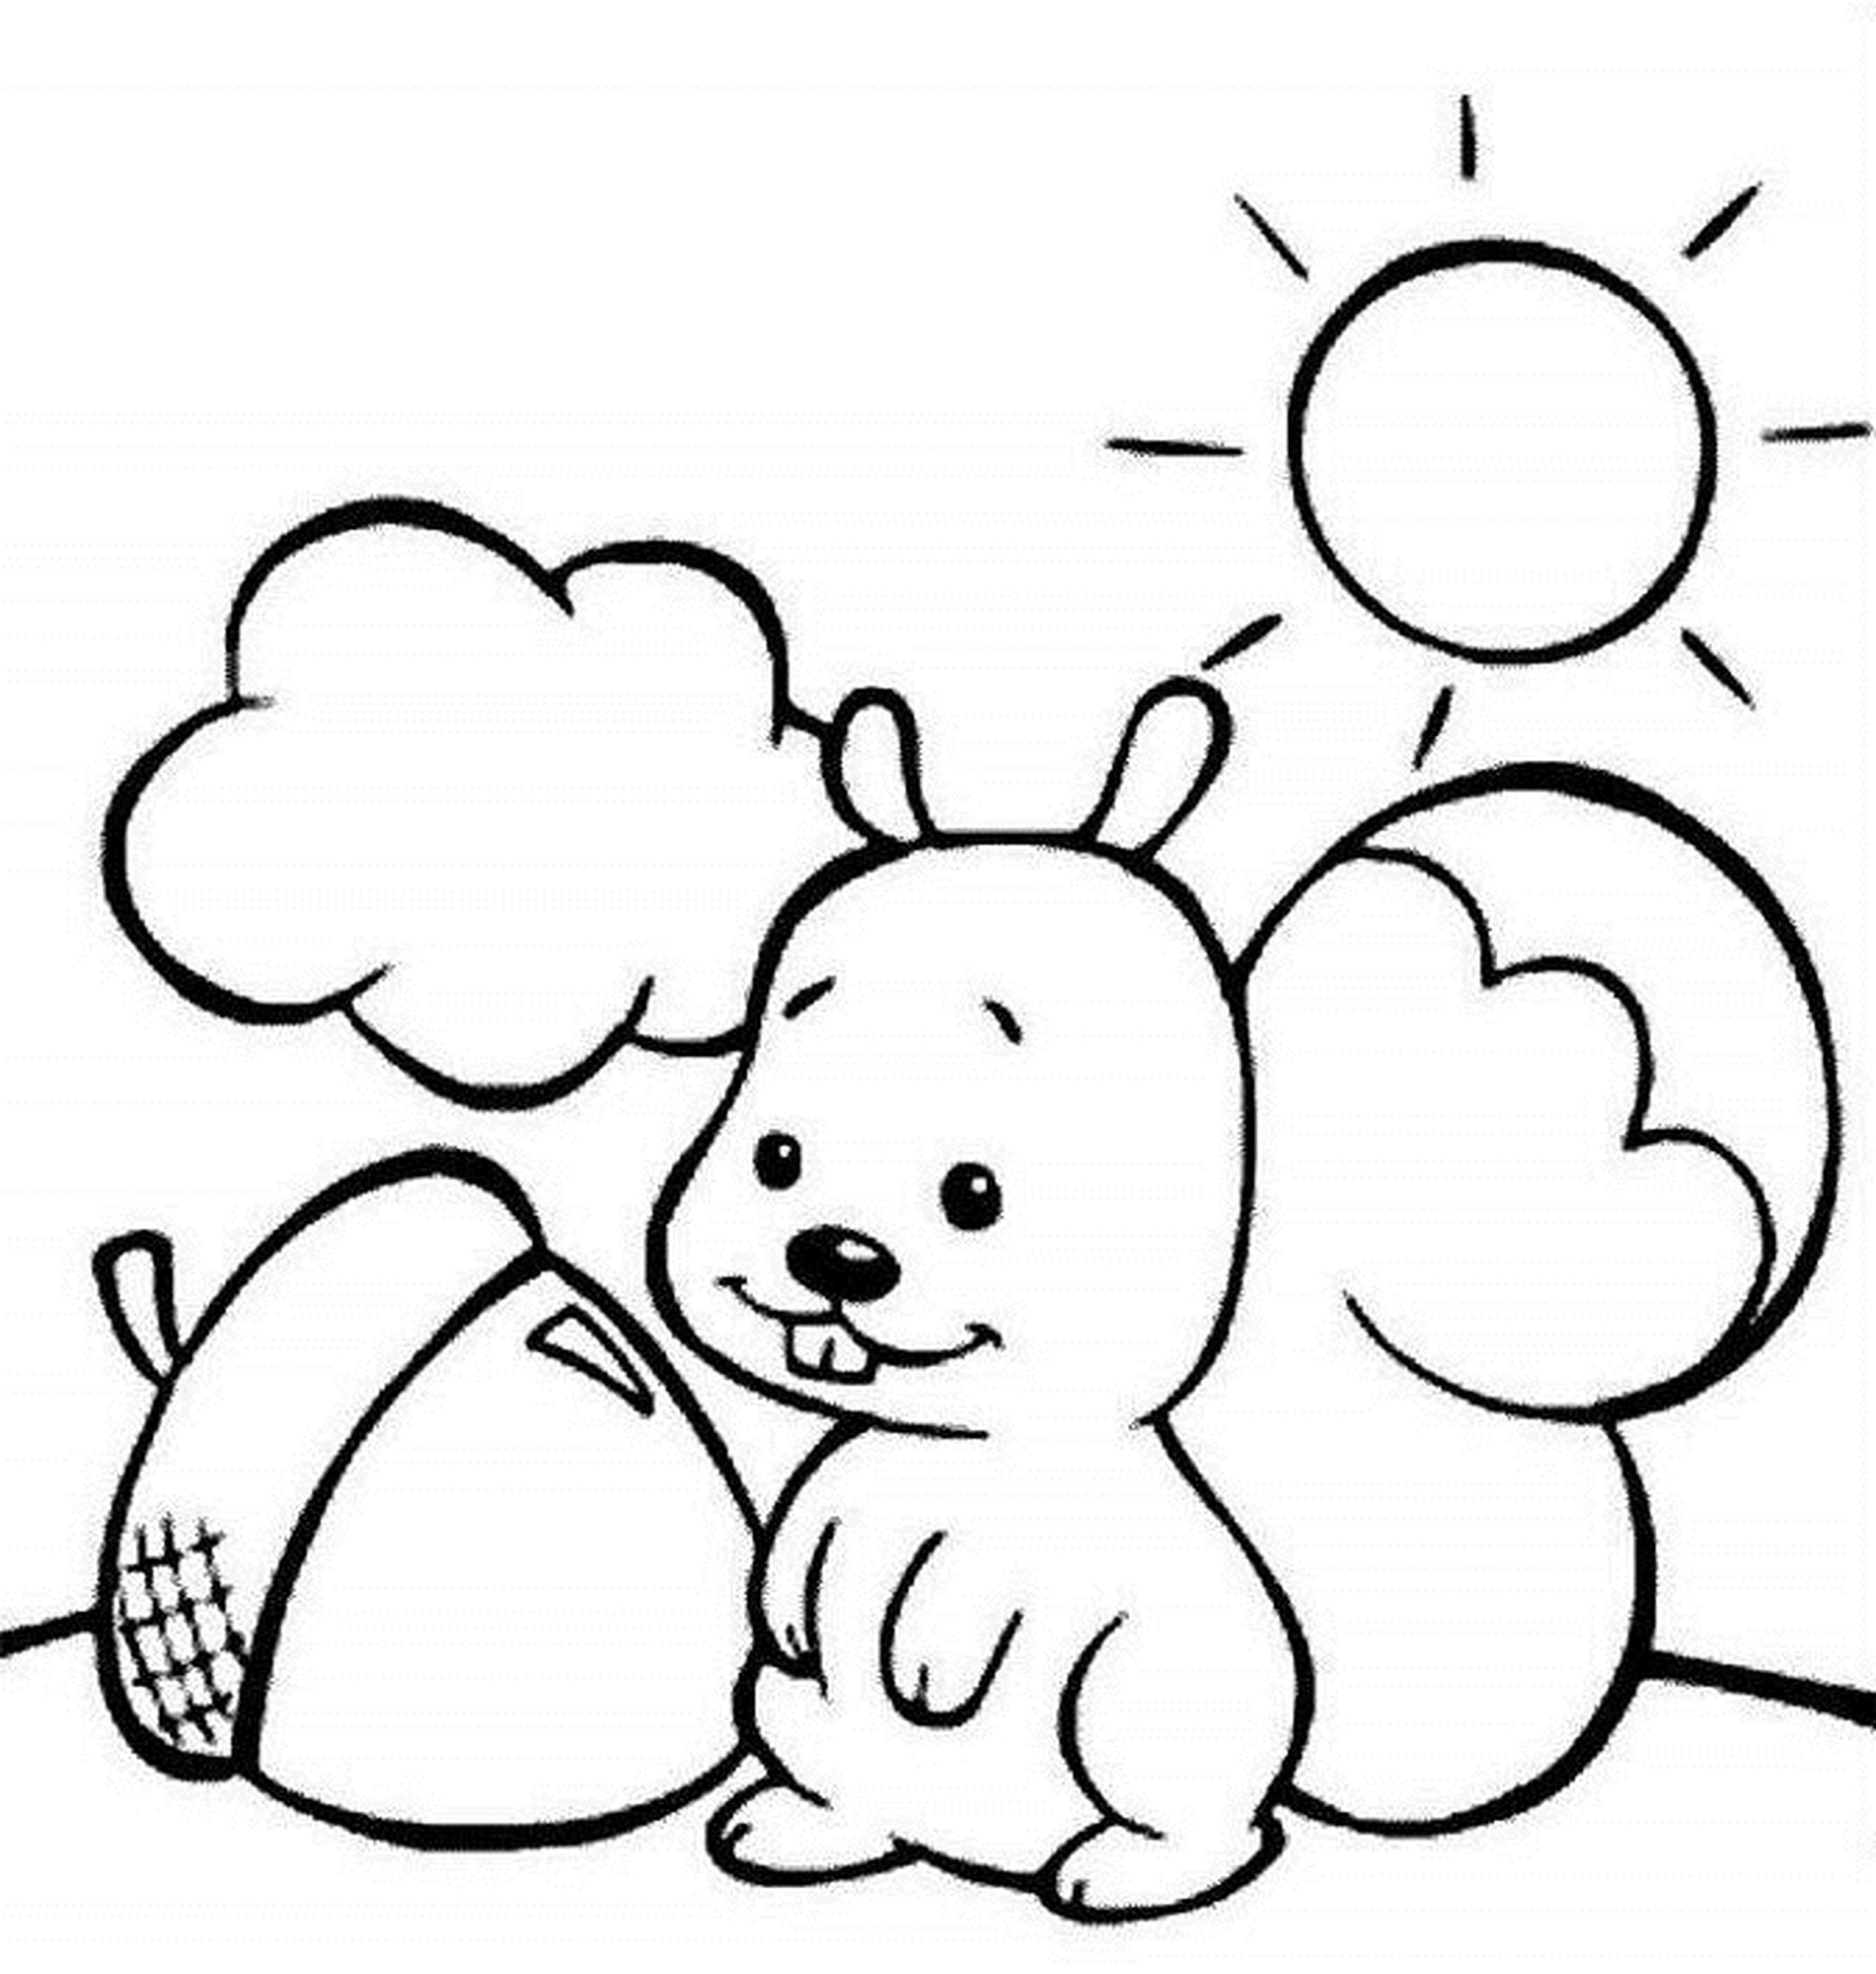 fall leaf coloring page twineandtable fall leaf coloring page